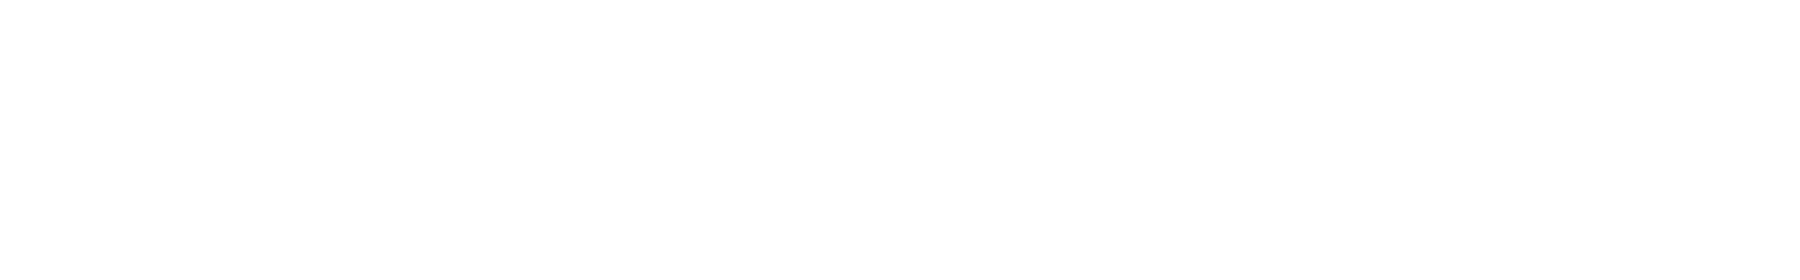 veh1 cutted sounds   071